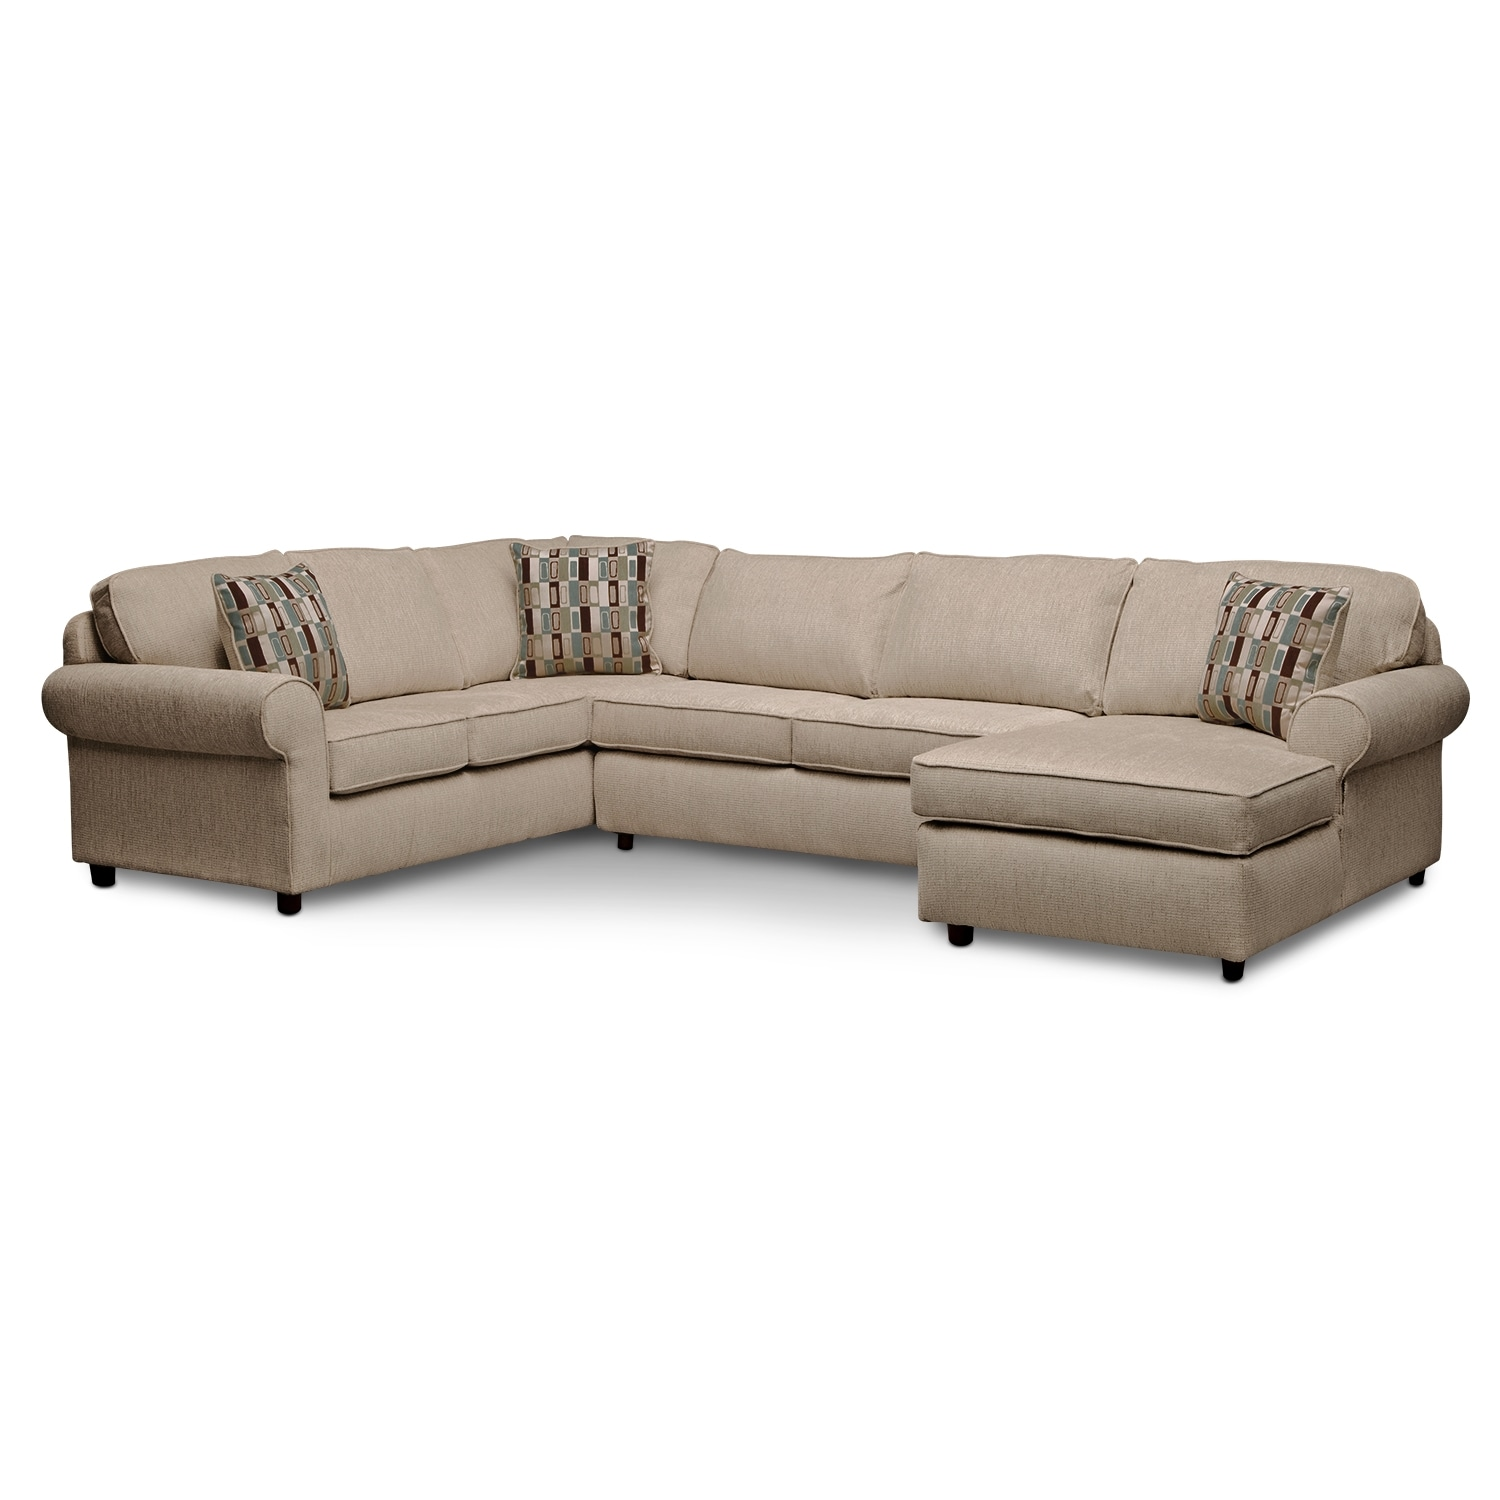 Monarch II 3-Piece Sectional